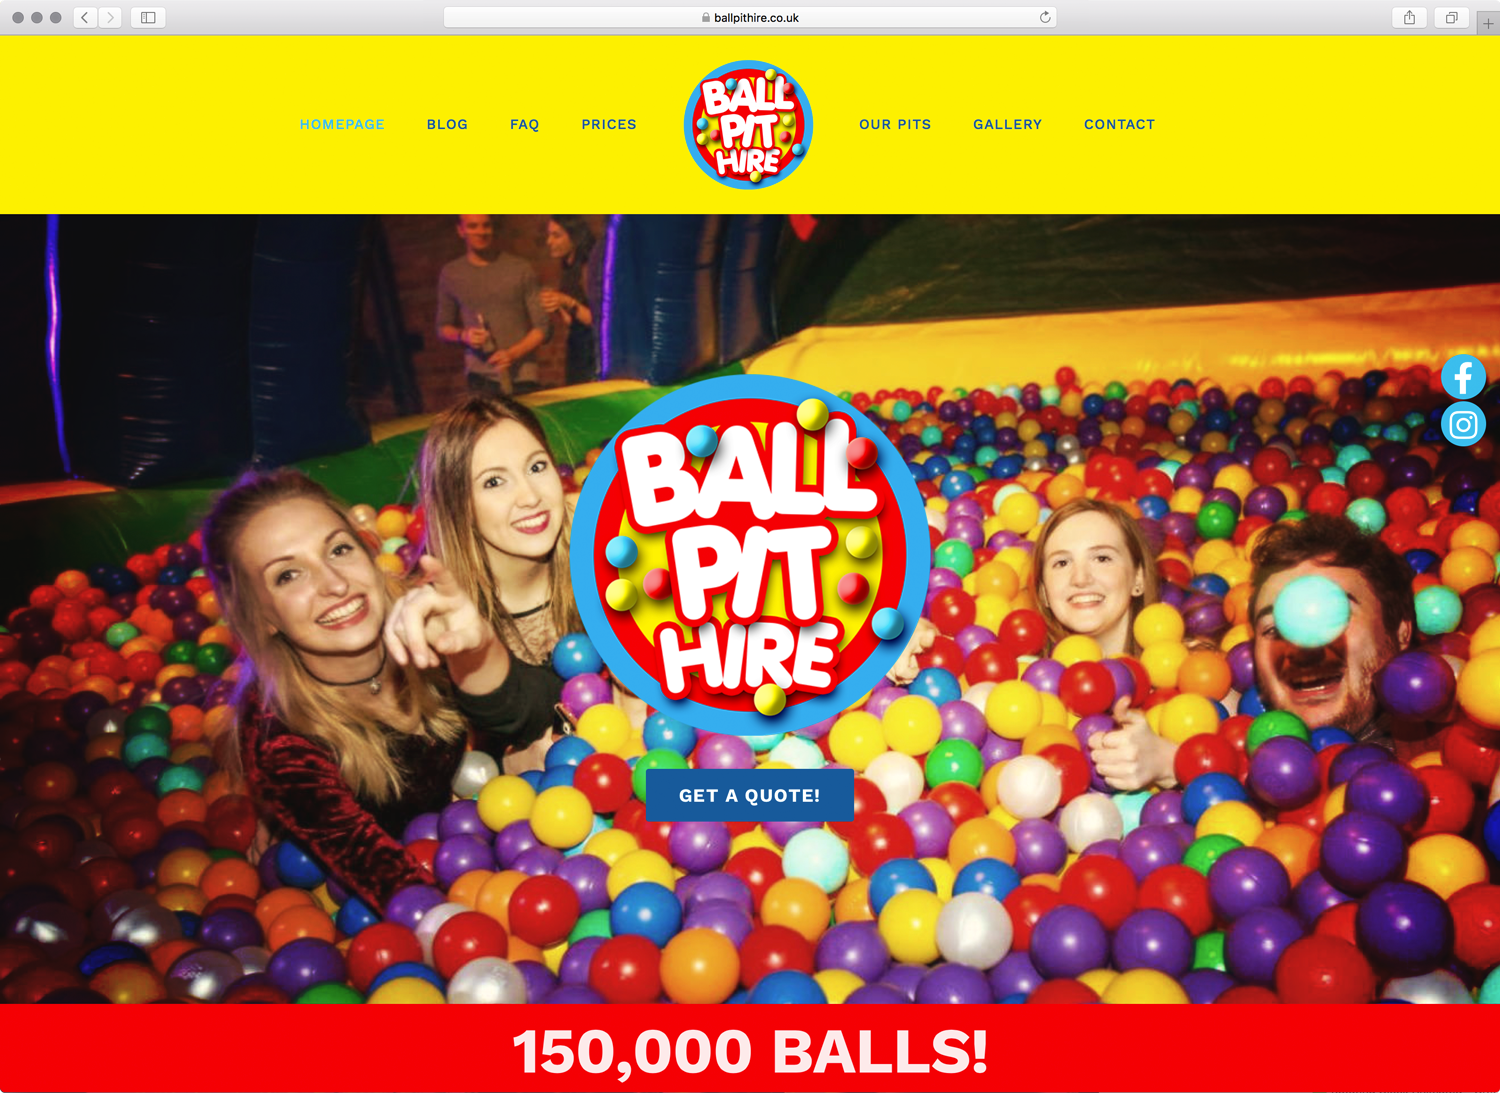 ballpit hire website screenshot created by opium addictive design